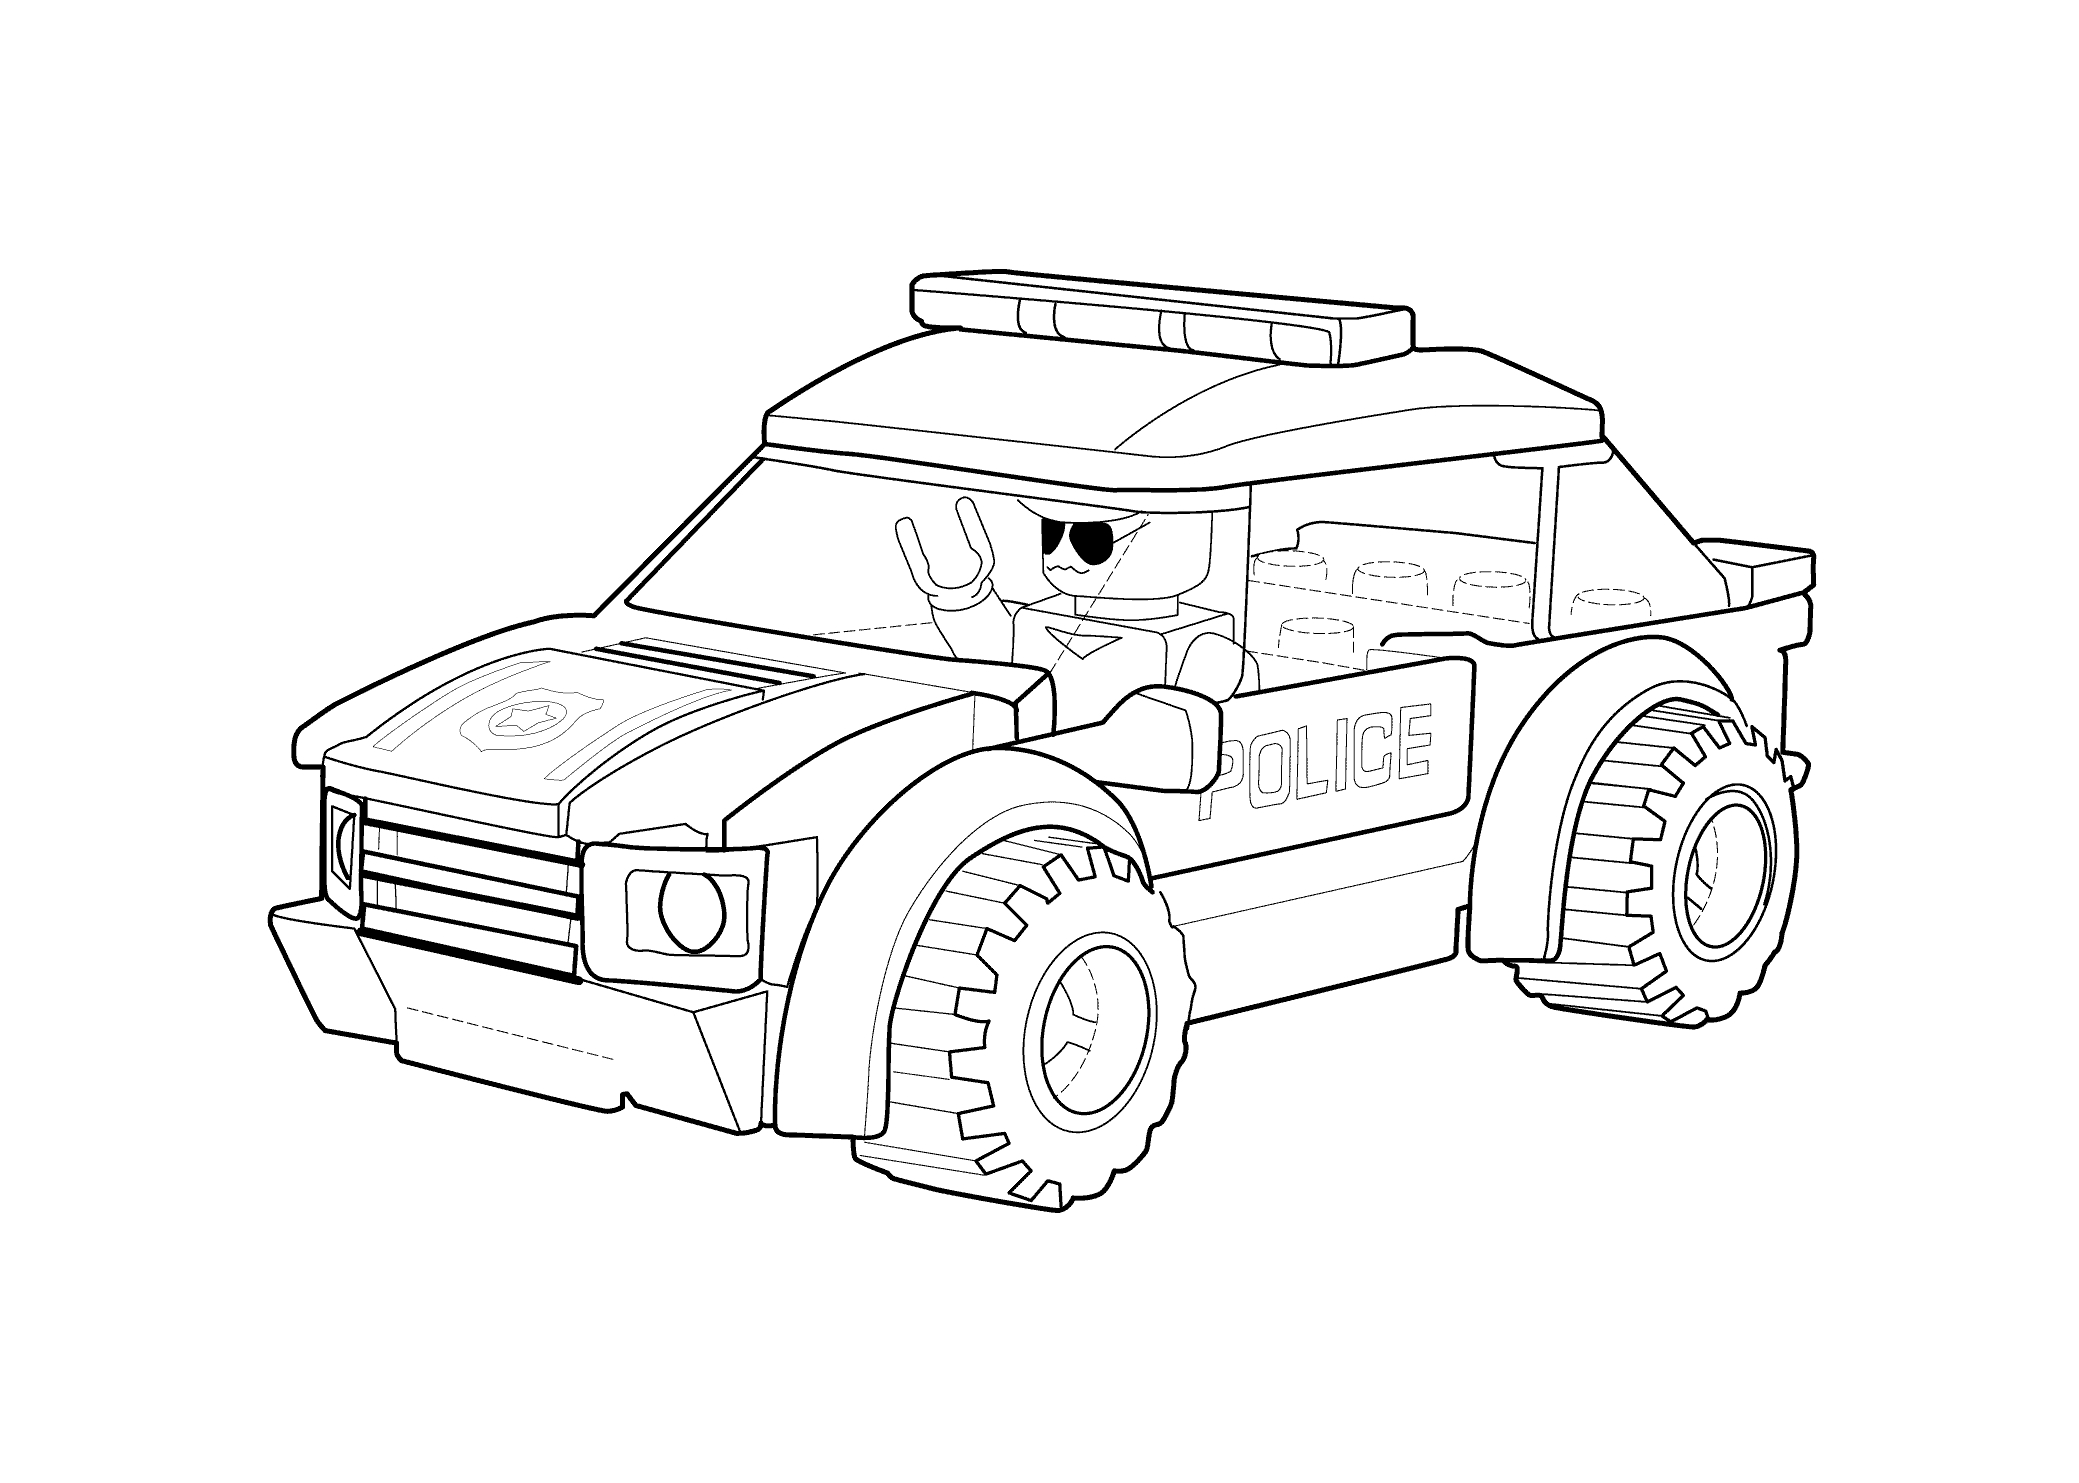 lego city coloring pages - lego city printable coloring pages